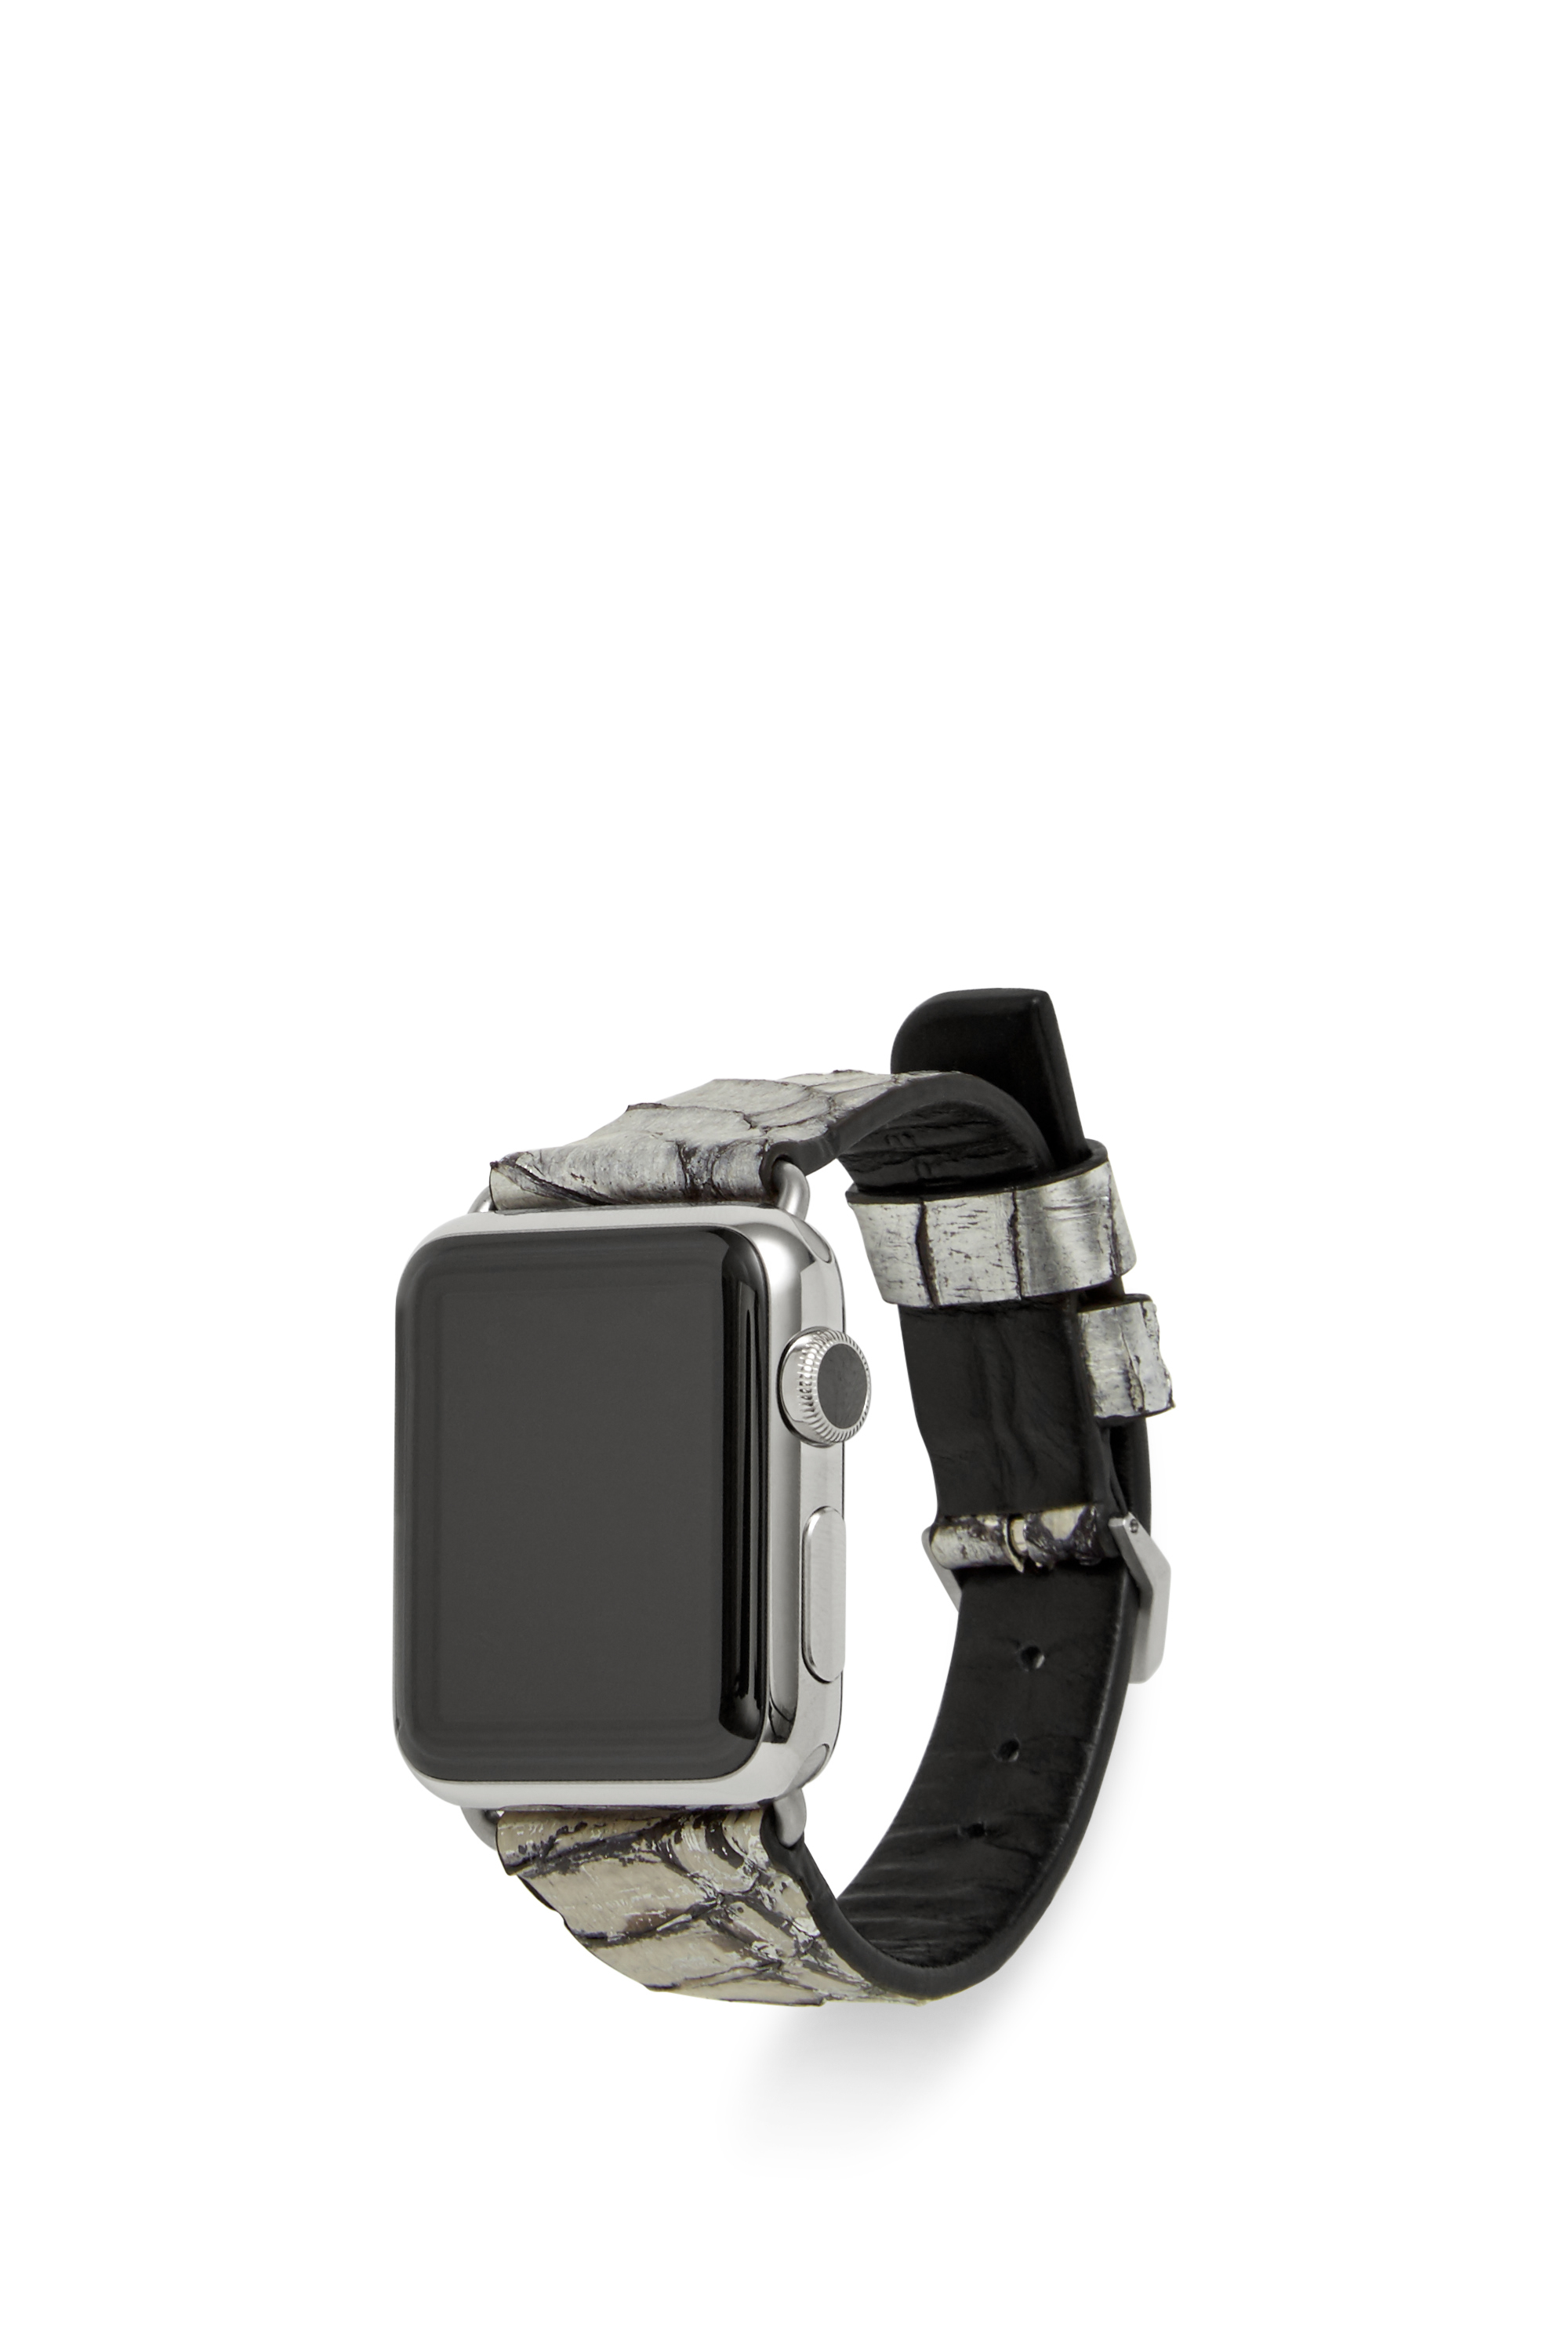 Rebecca minkoff Snake Embossed Leather Apple Watch Band in